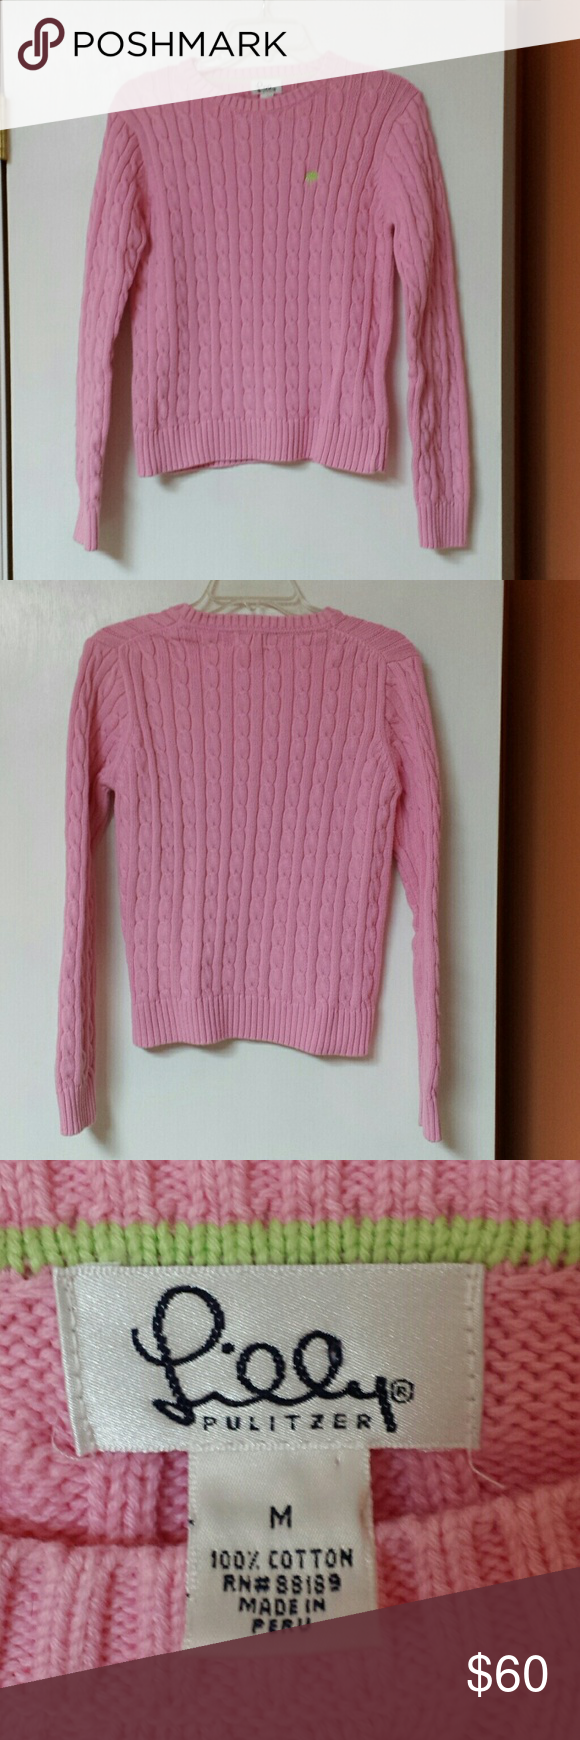 Lilly Pulitzer Cable Knit Cotton Sweater M Pink Cable Knit Sweater Cotton Sweater Sweaters